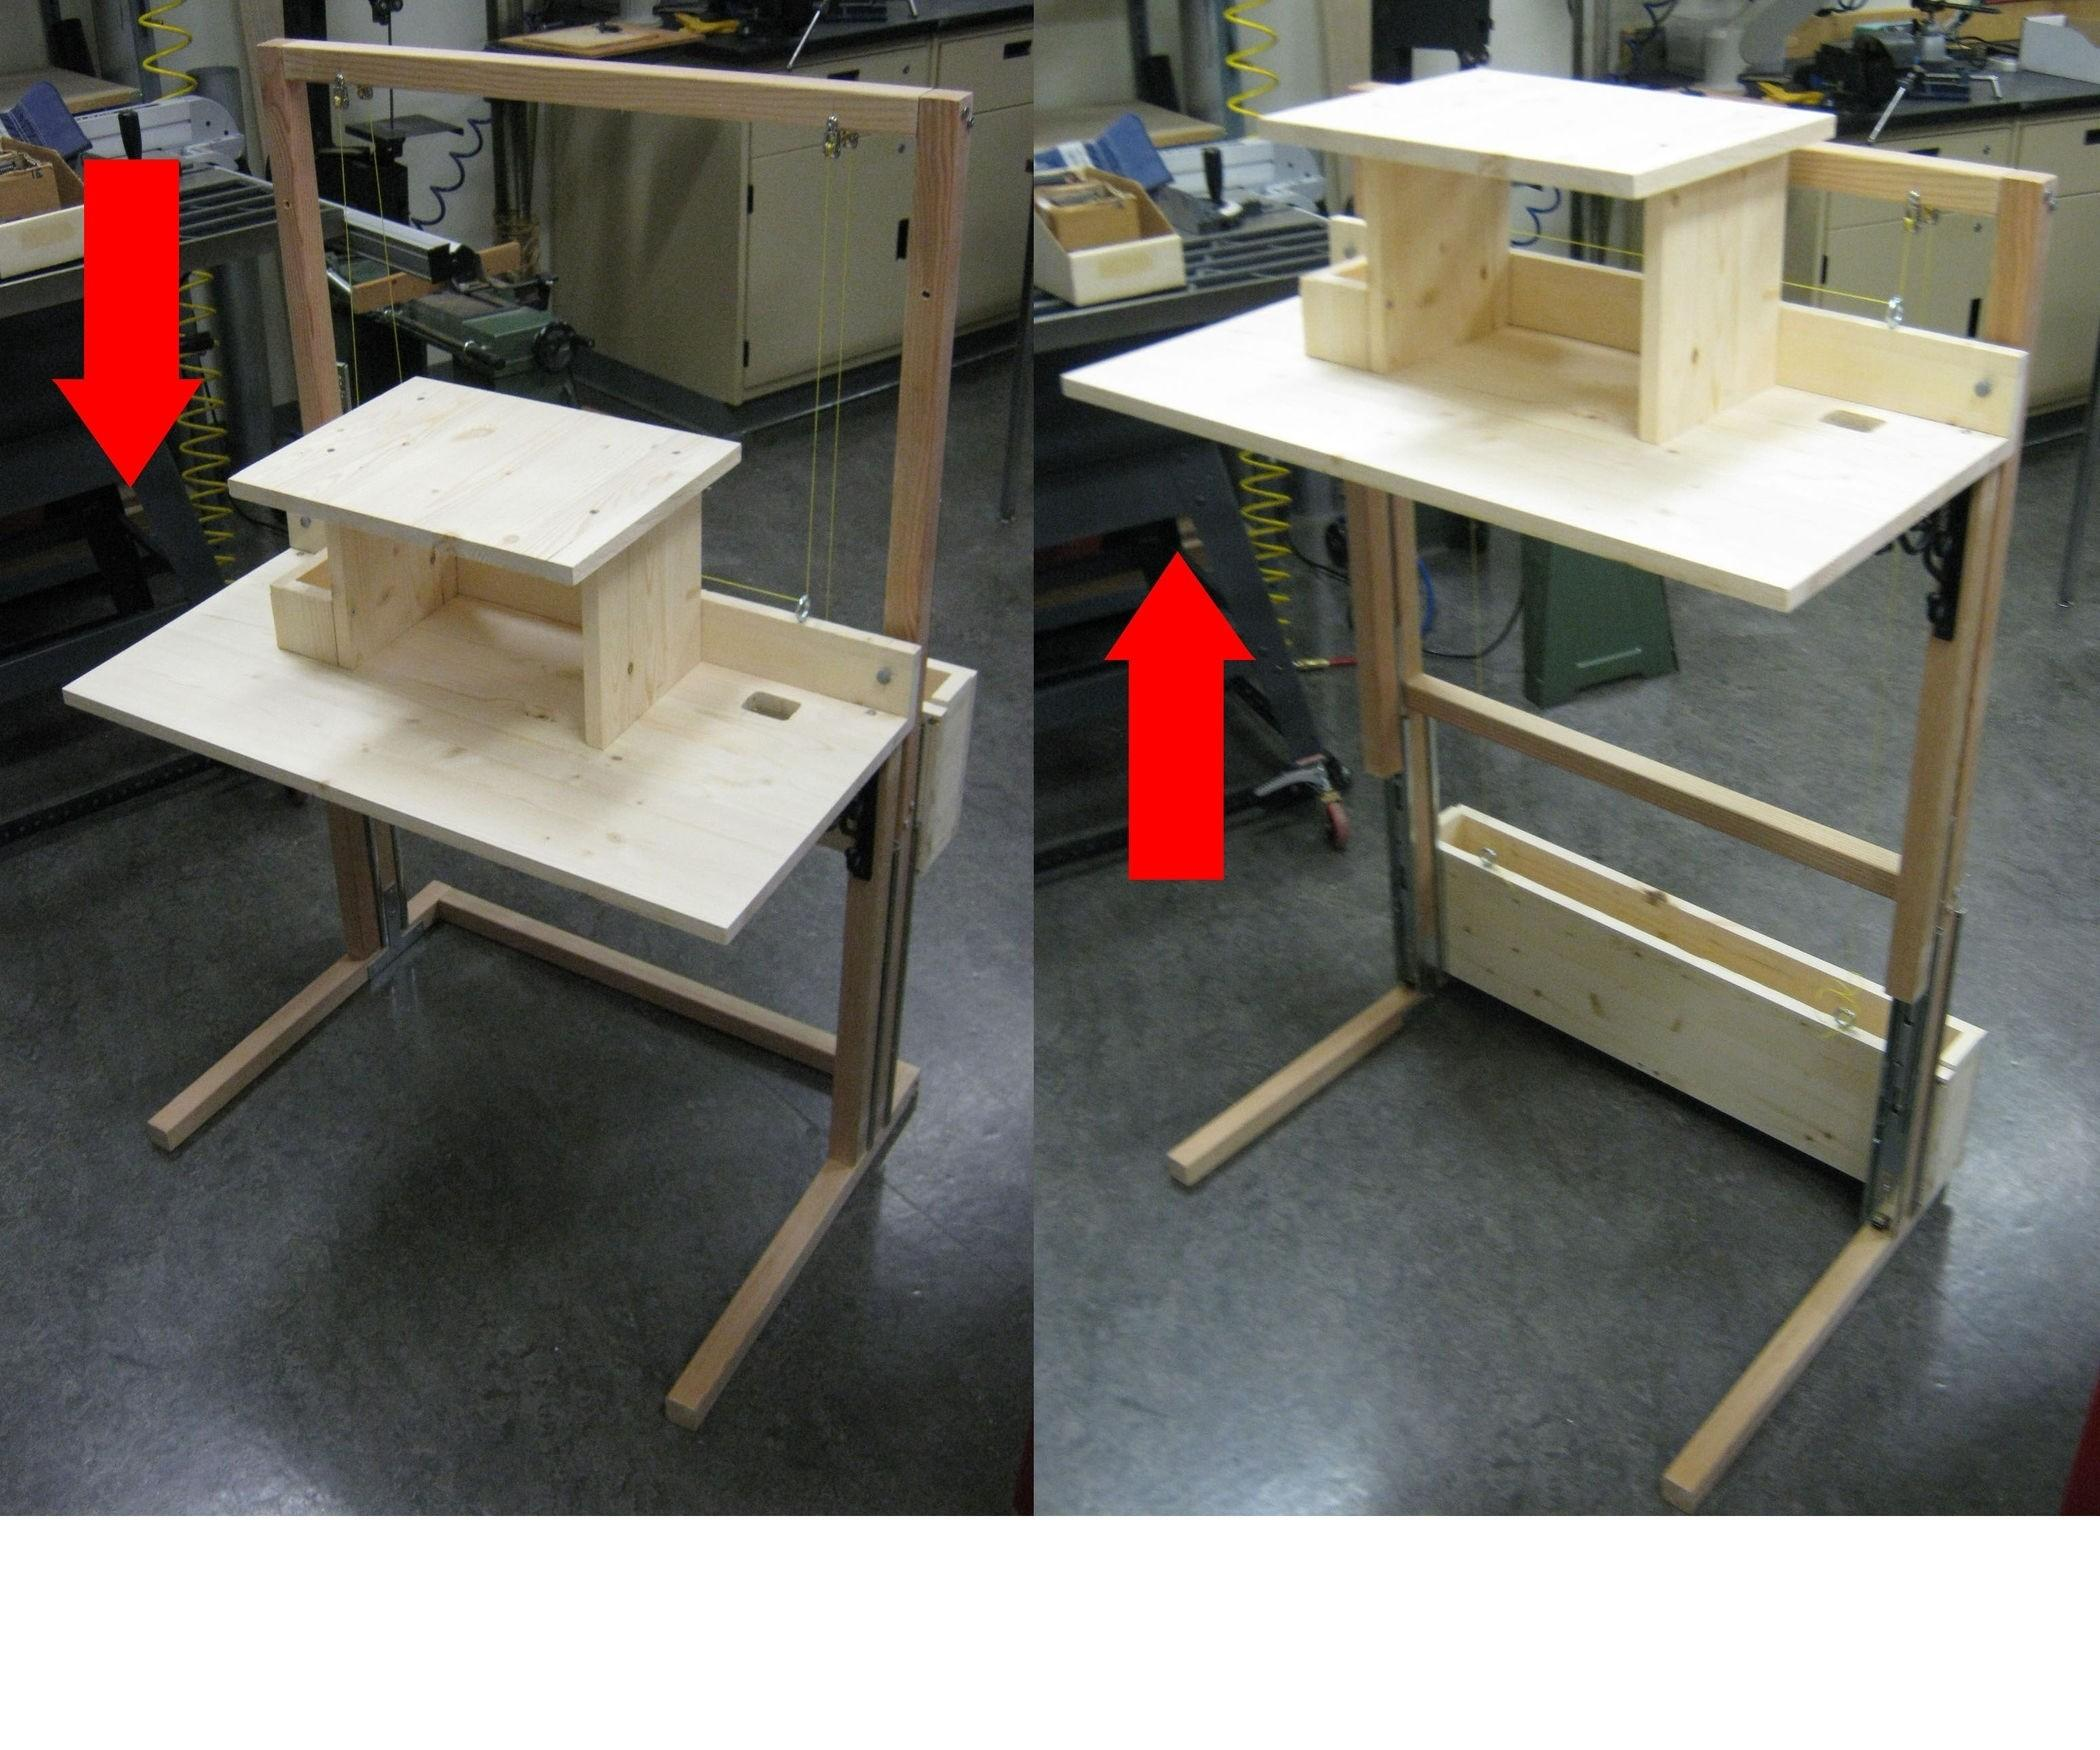 Diy Sit Stand Desk Donttouchthespikes